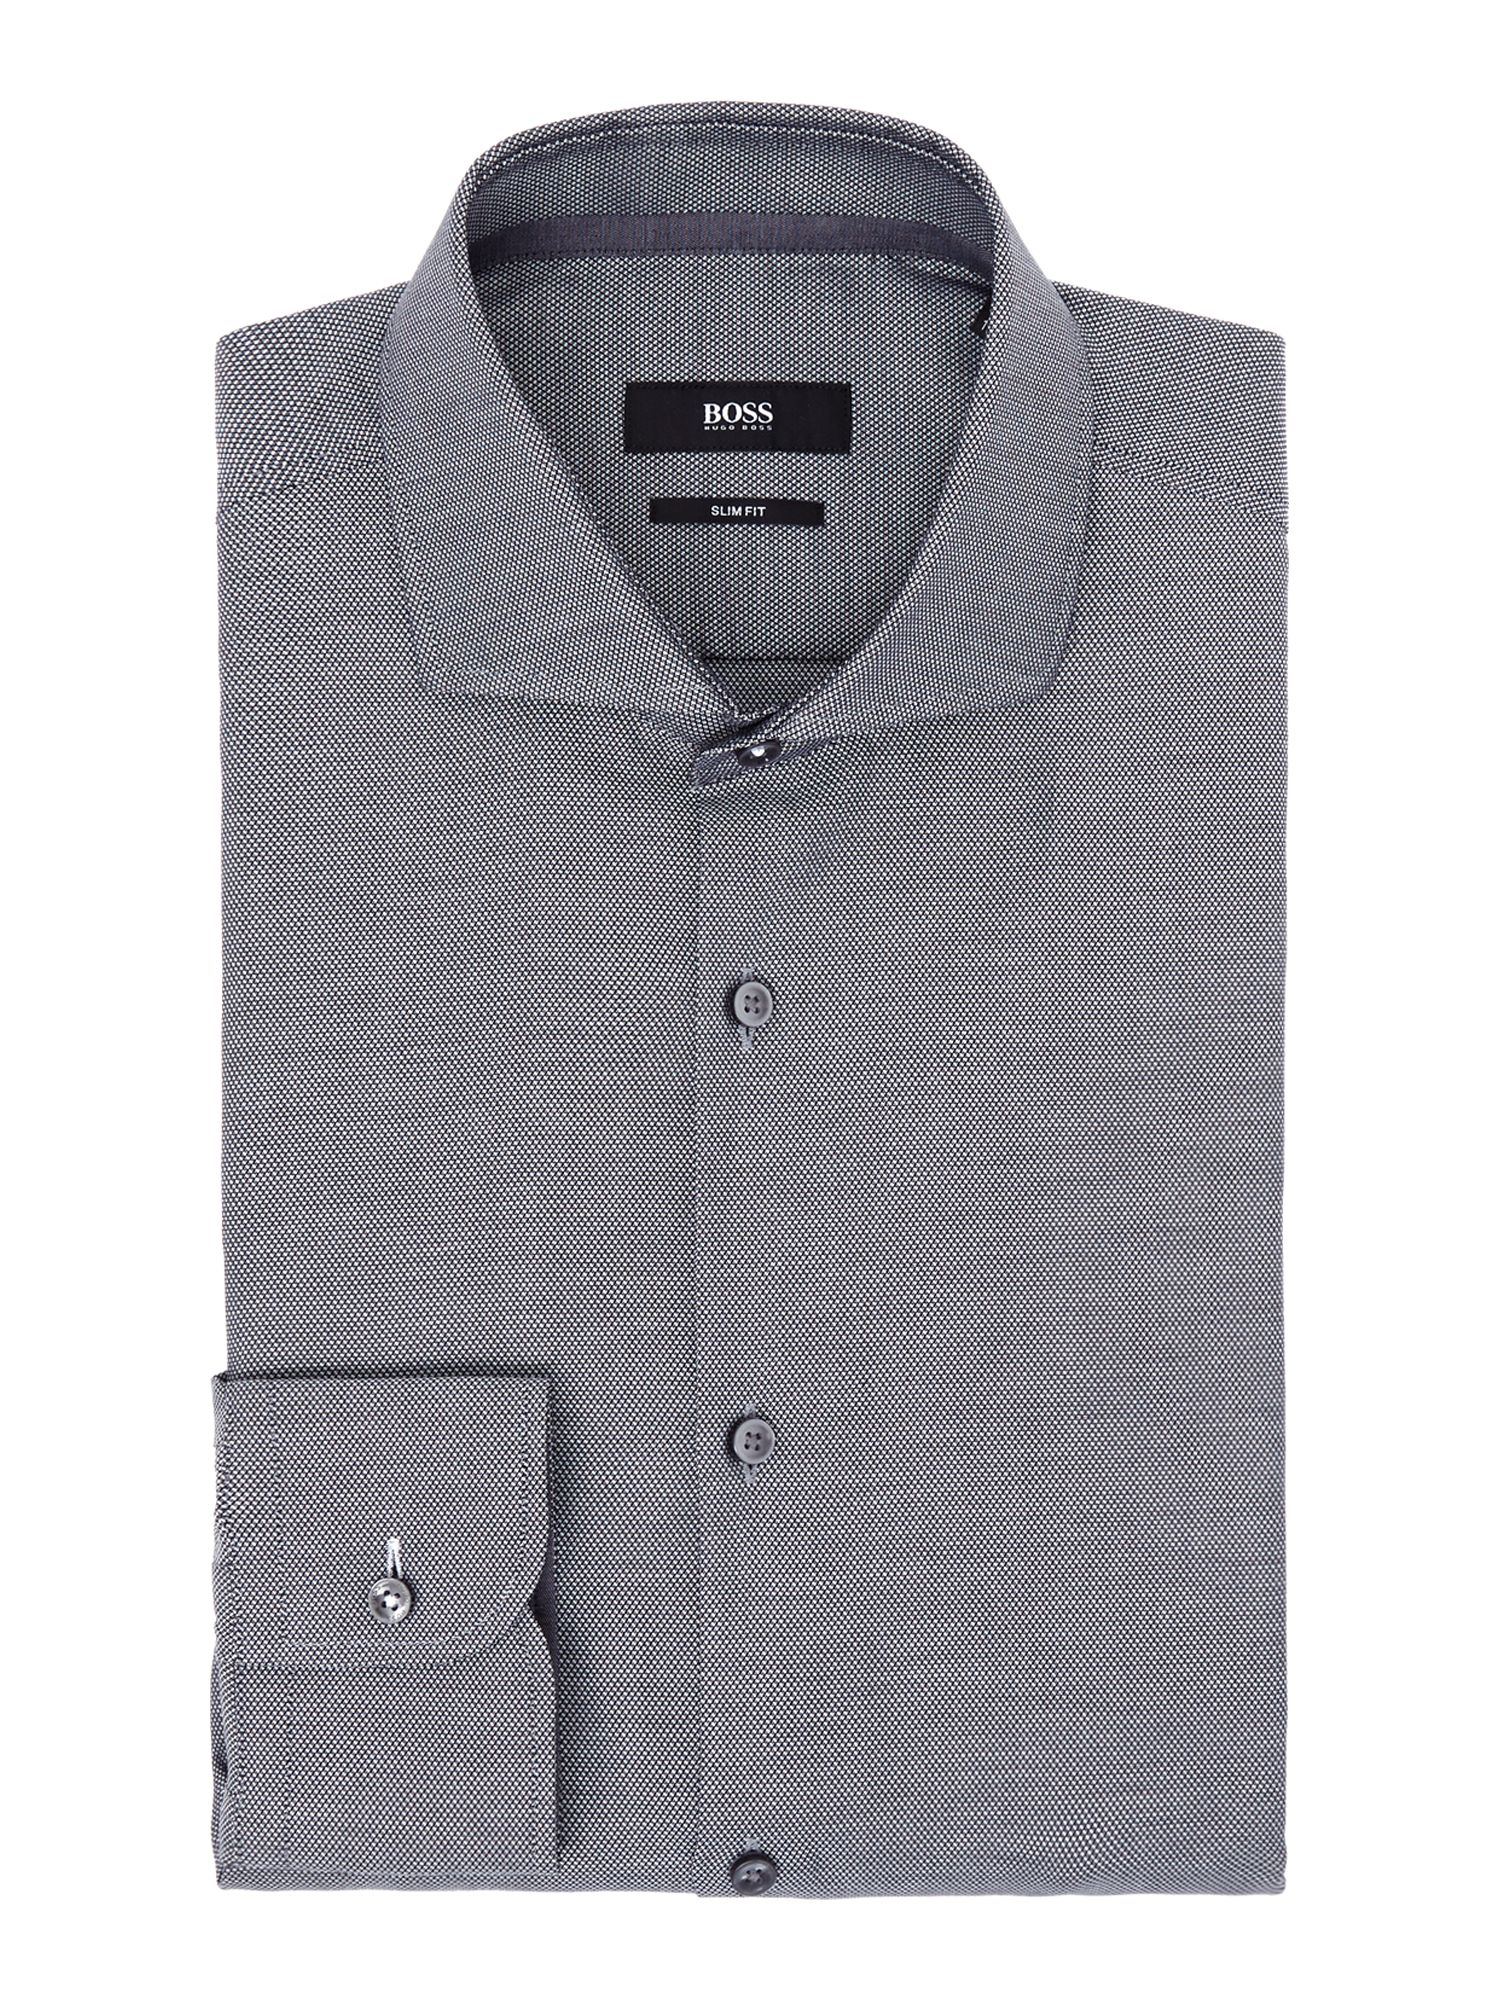 Boss Jery Slim Fit Textured Shirt In Gray For Men Lyst